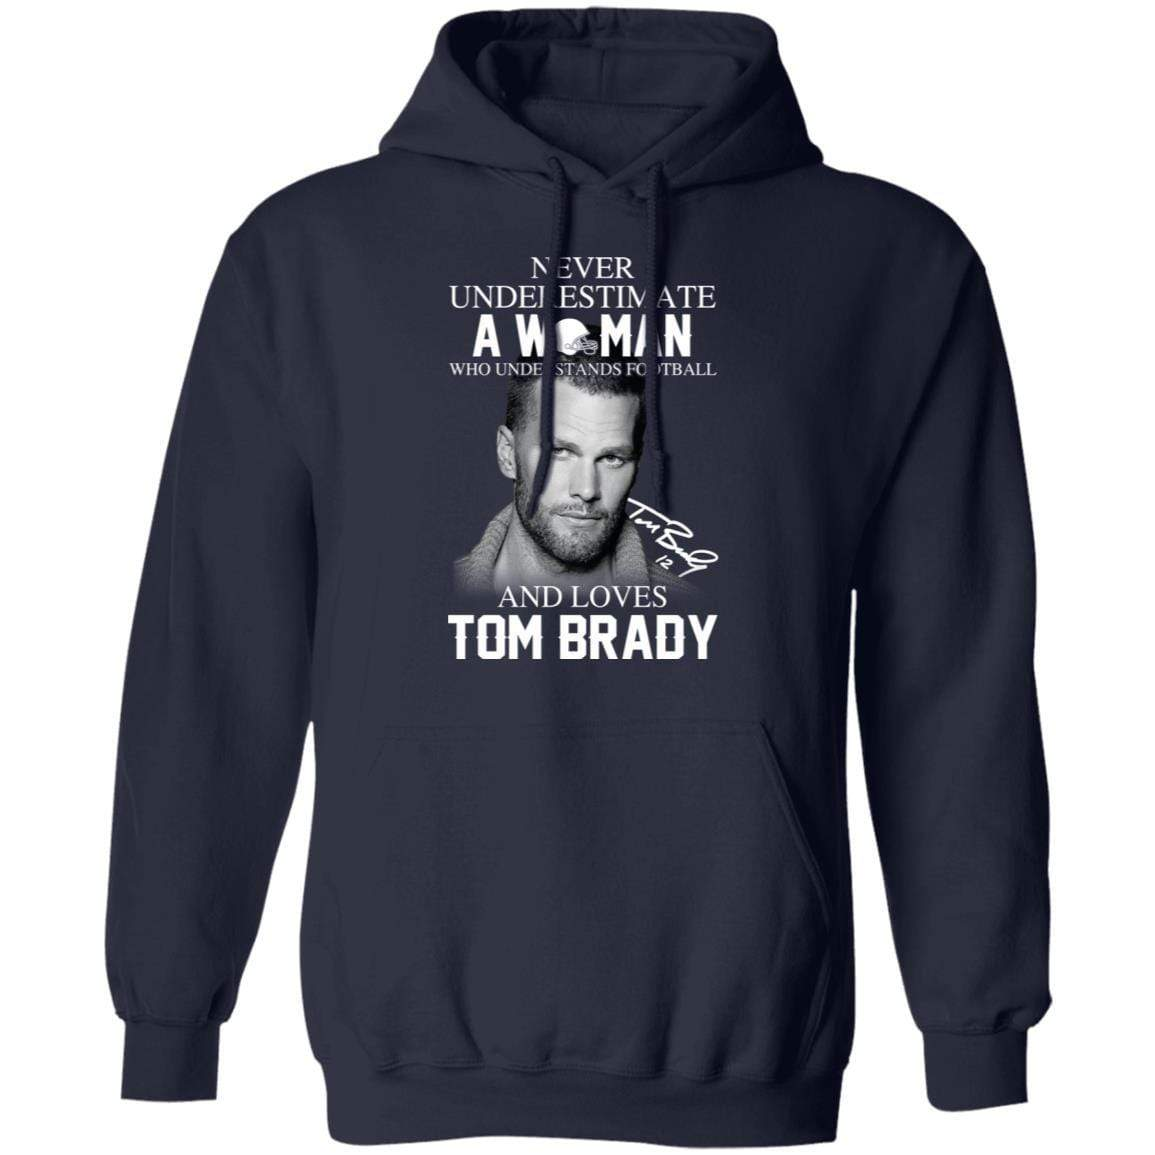 Never Underestimate A Woman Who Understands Football And Loves Tom Brady T-Shirts, Hoodies 541-4742-86894526-23135 - Tee Ript